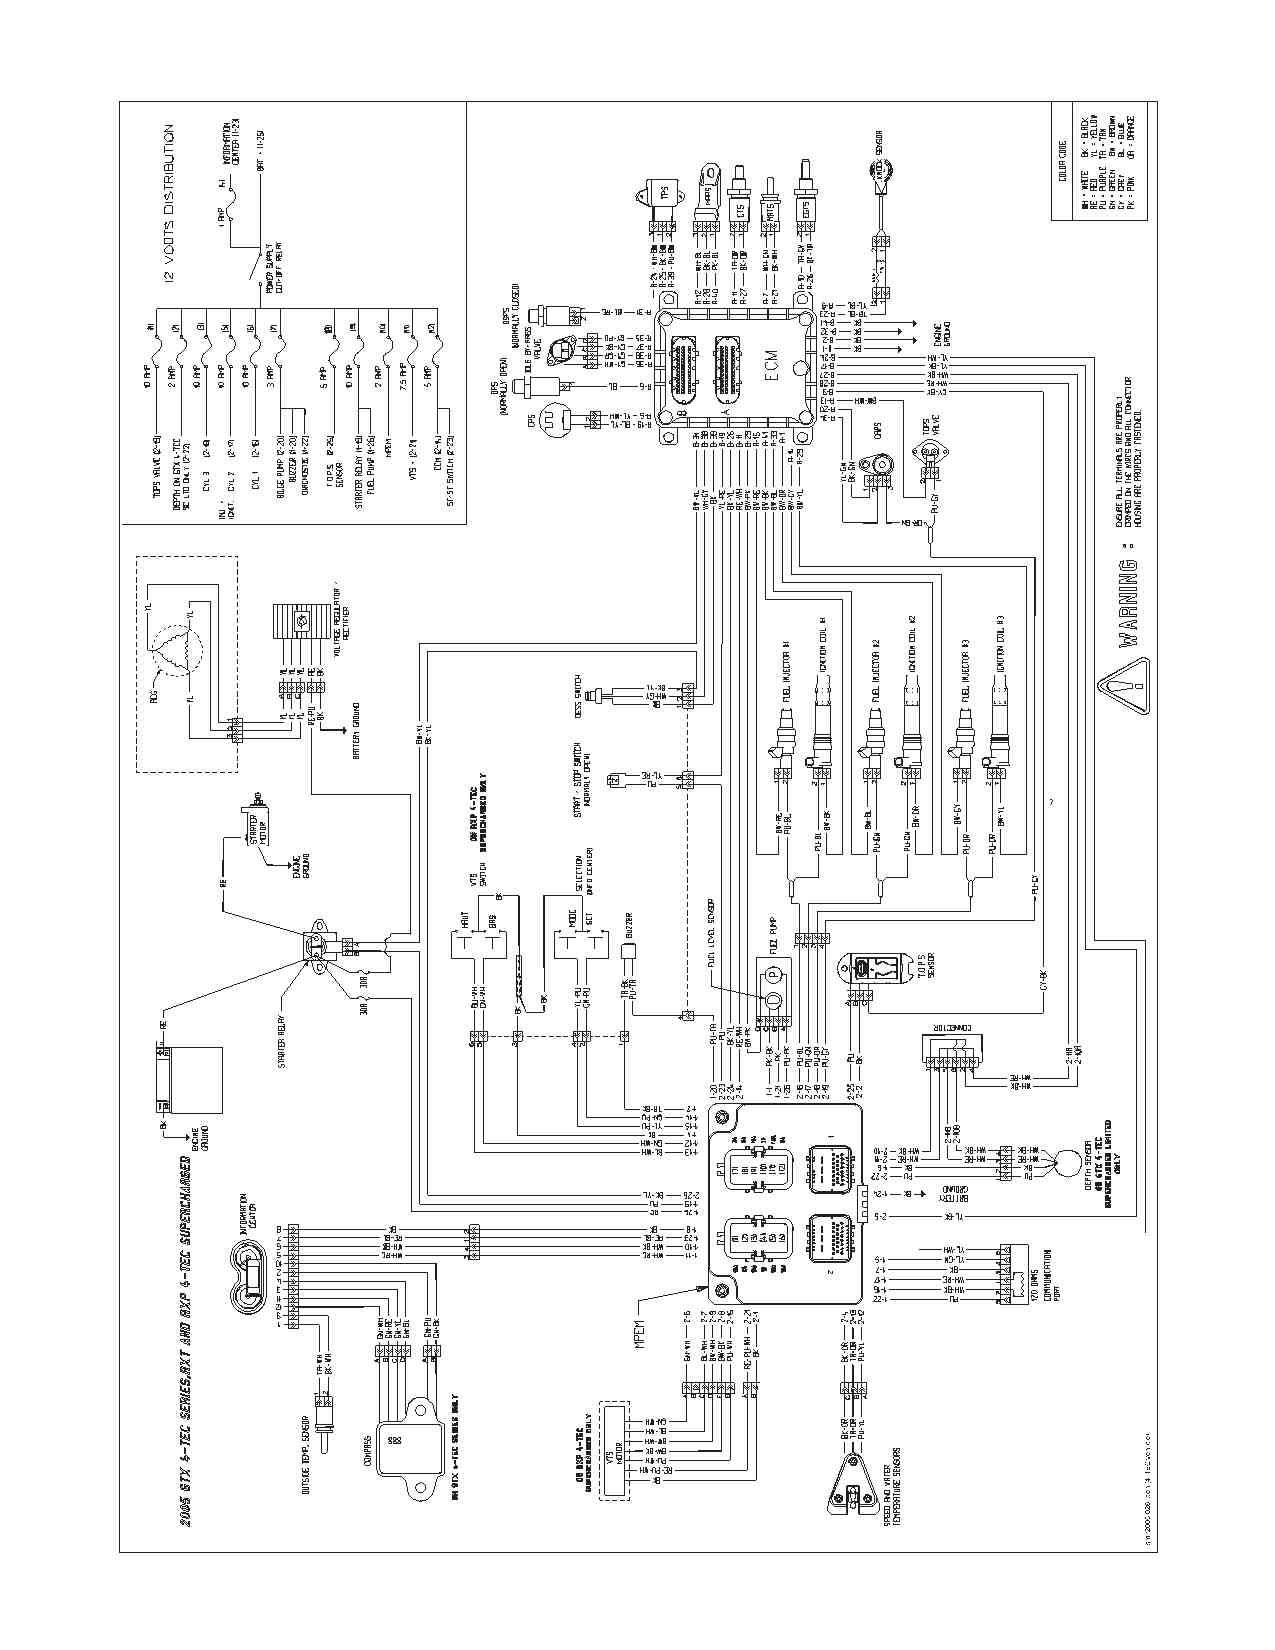 DIAGRAM] Sea Doo 587 Wiring Diagram FULL Version HD Quality Wiring Diagram  - NICKI-MINAJ.AZIENDAAGRICOLACONIO.ITAz. Agr. Conio